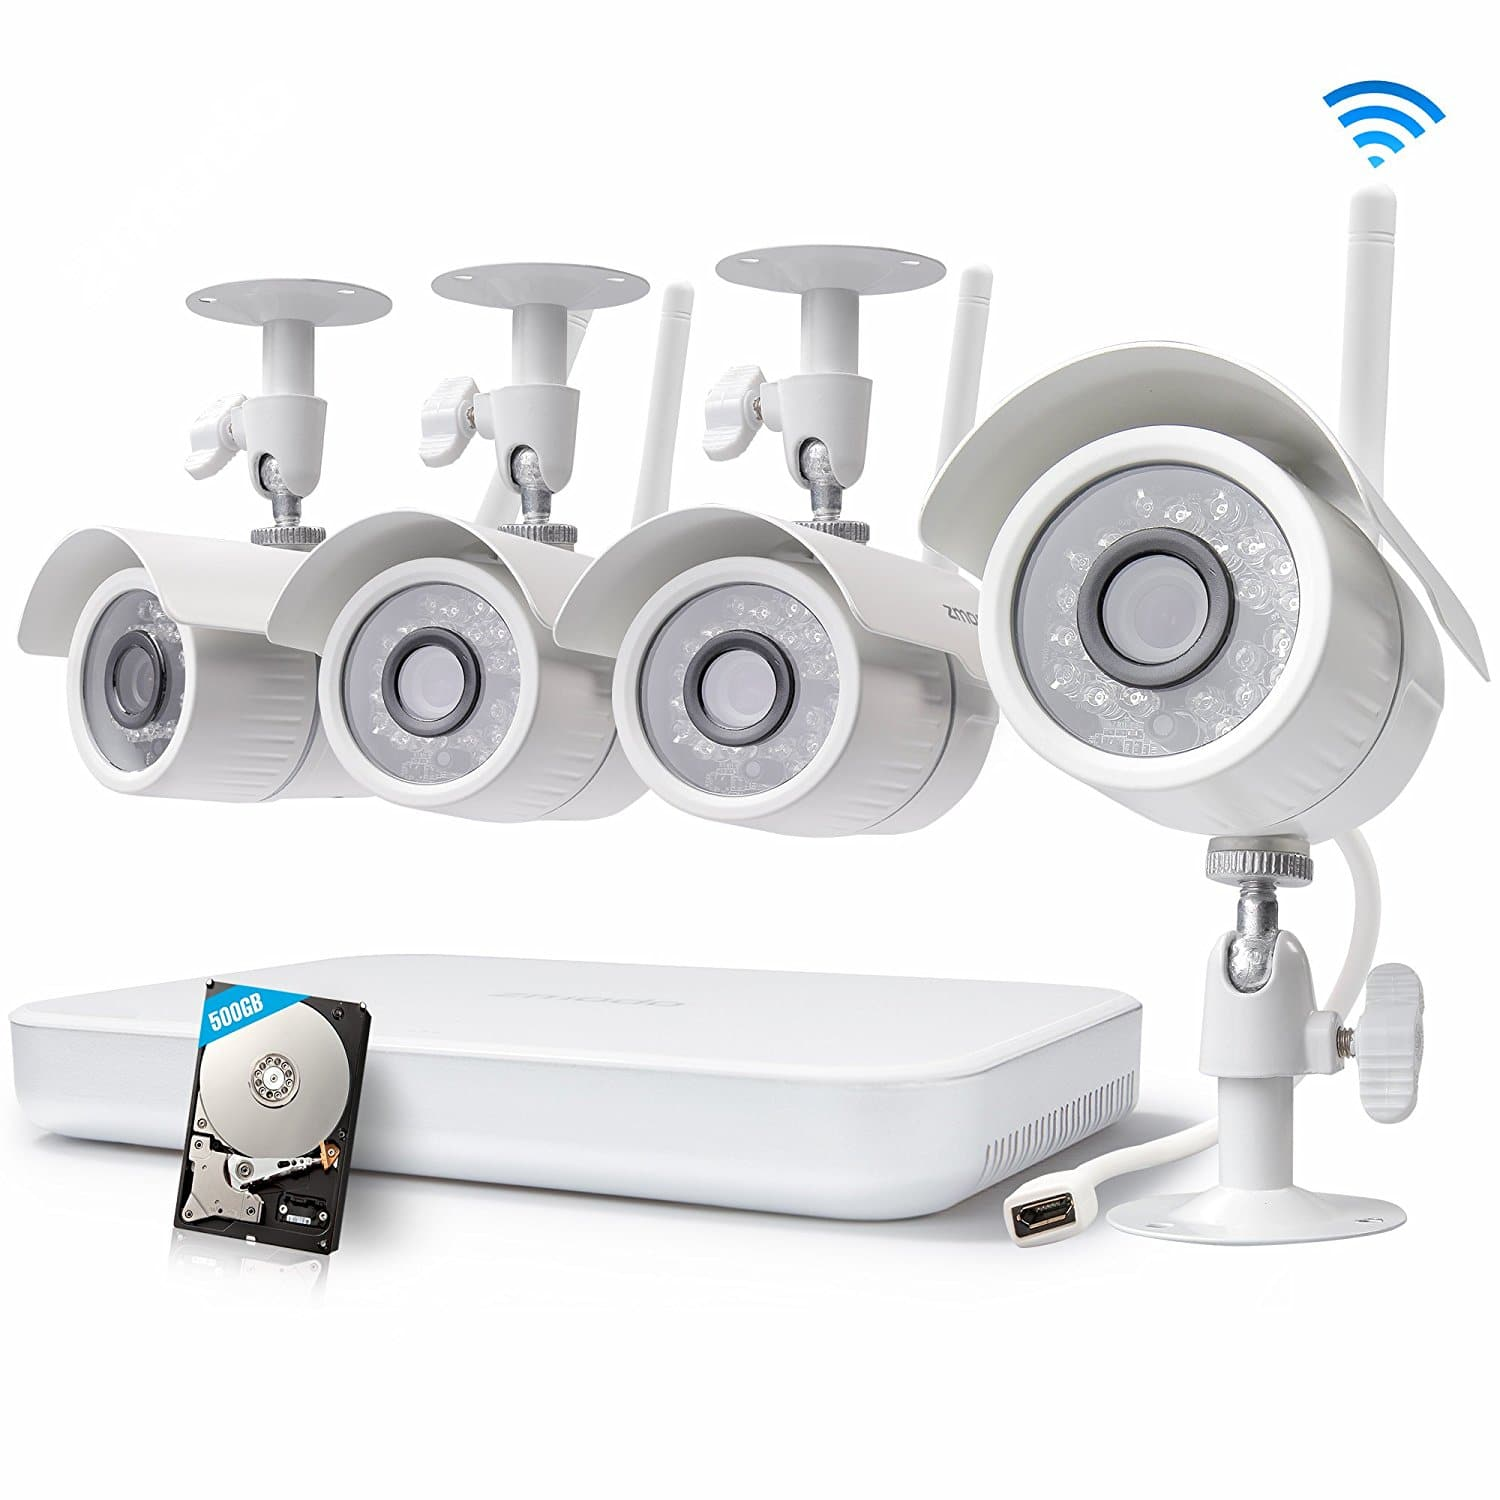 Bundles of 1080p IP Security Cameras w/ Six Months Cloud Storage - Starting From $39.75 to $179.99 +FS $39.99